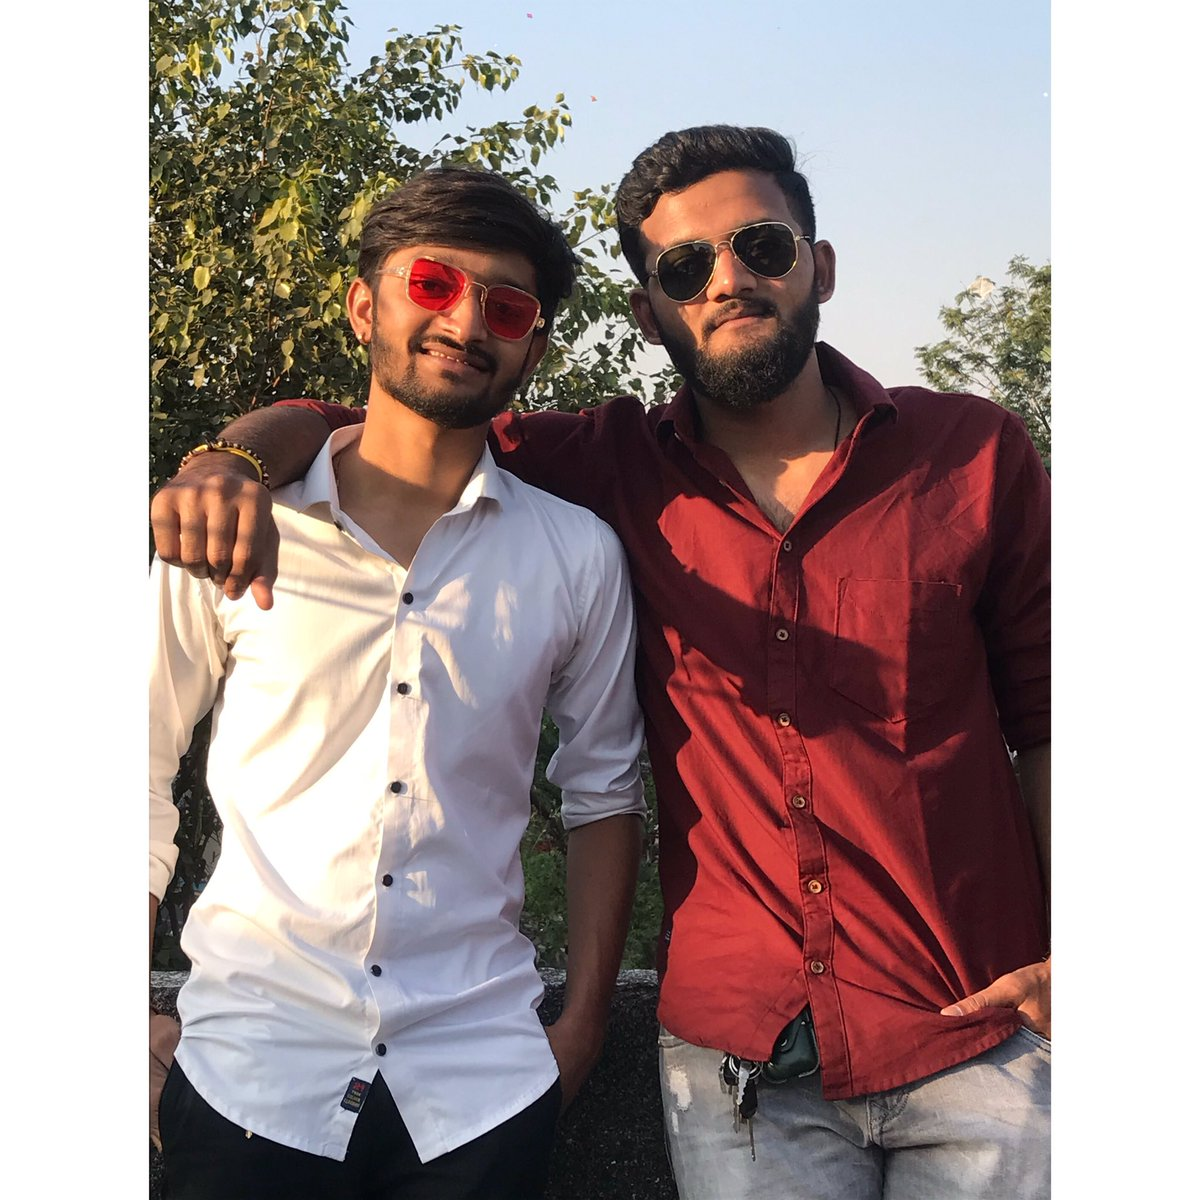 A brother's love will forever protect you.🖤😘😇  #uttrayan2021 #Uttarayan #bro #brother #Brothers #dishantvirani #viranidishant #dishant #virani #artist #actor #baba #surat #SundayMorning #Gujarat #ahemdabad #Vadodara #kiteflying #EnjoyingEverydayLife #momentum2021 #2021year #dv